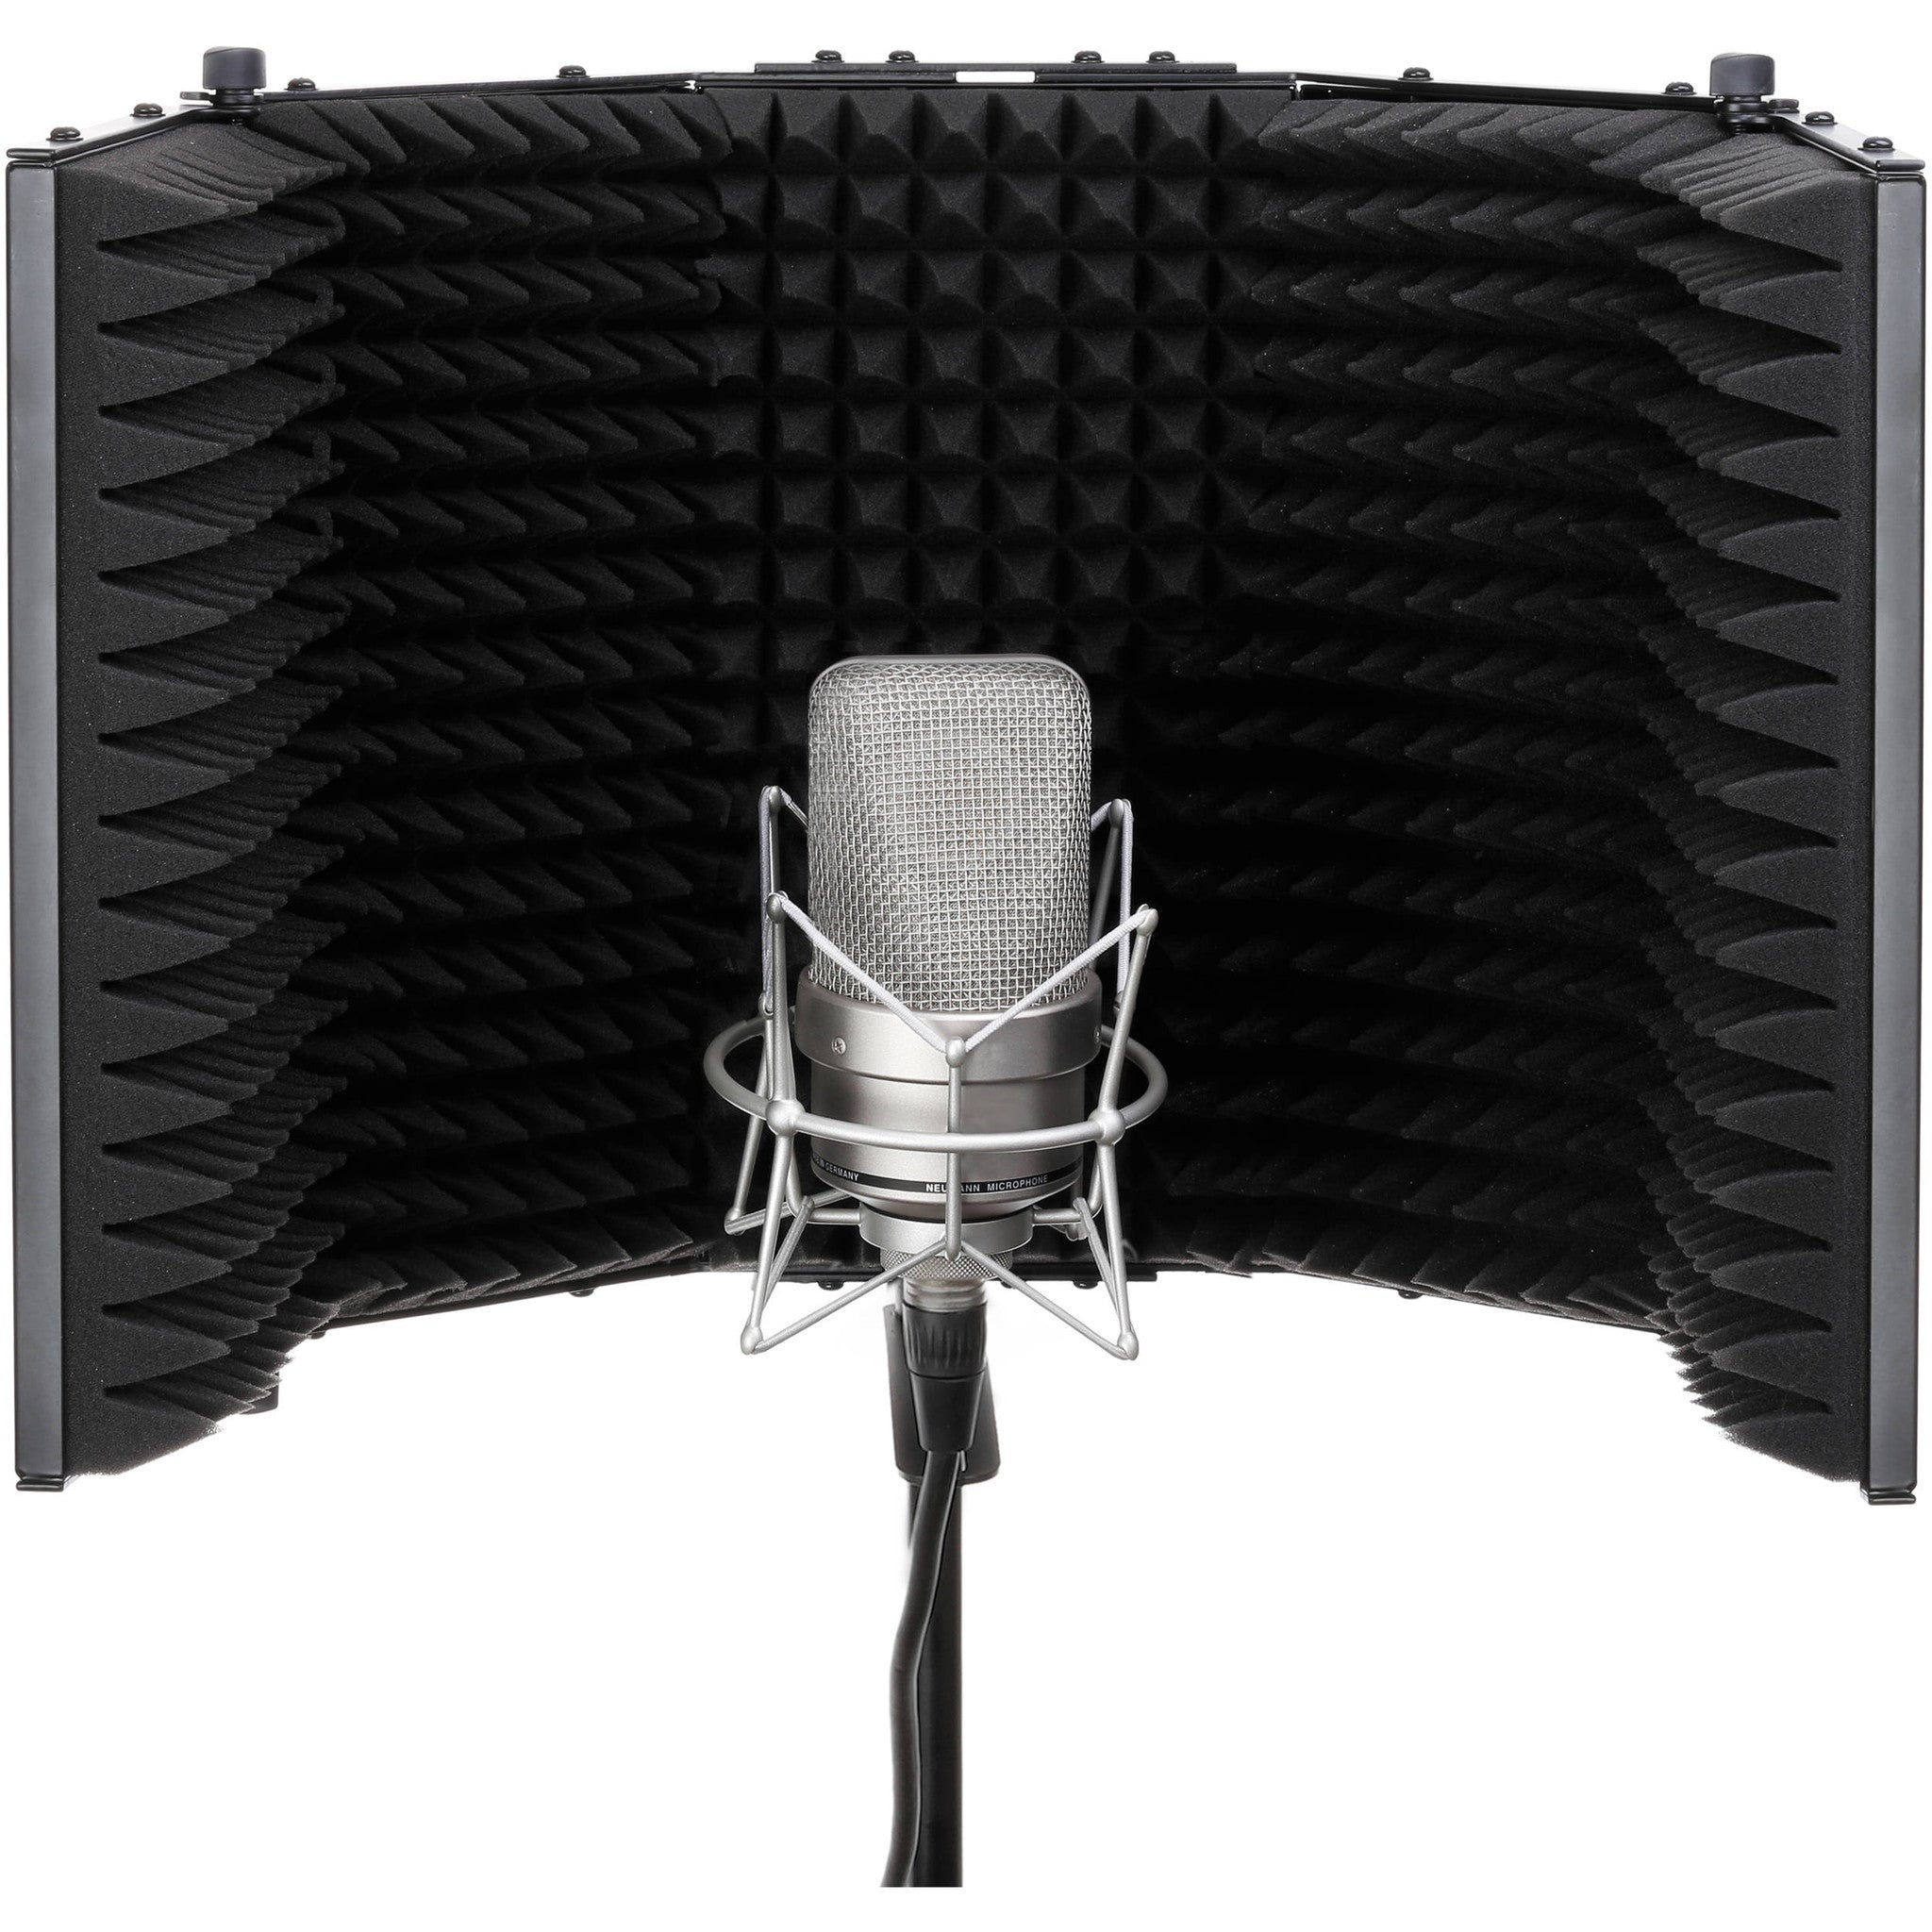 Acoustic Reflection Filter Mic Stand And Headphone Hook